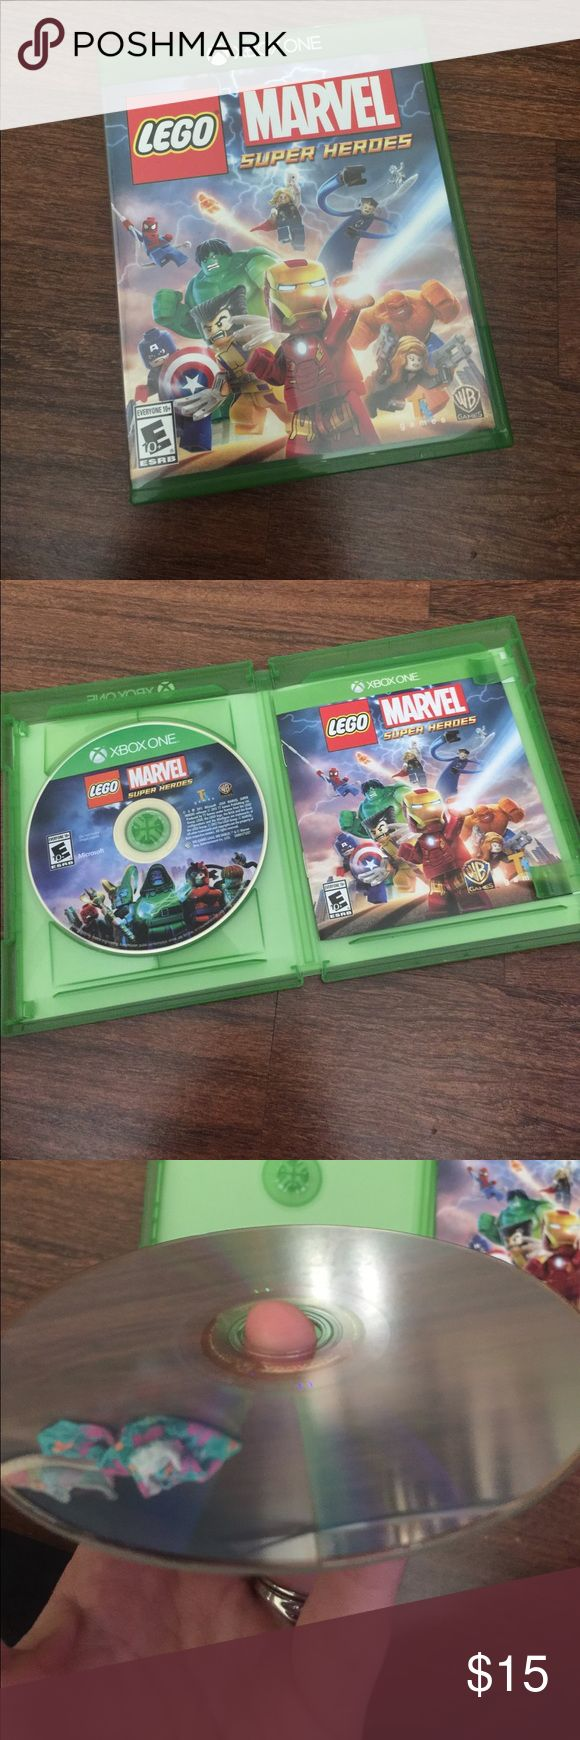 Lego marvel super heroes Lego marvel super heroes game for Xbox one new never been played but is no longer sealed Accessories